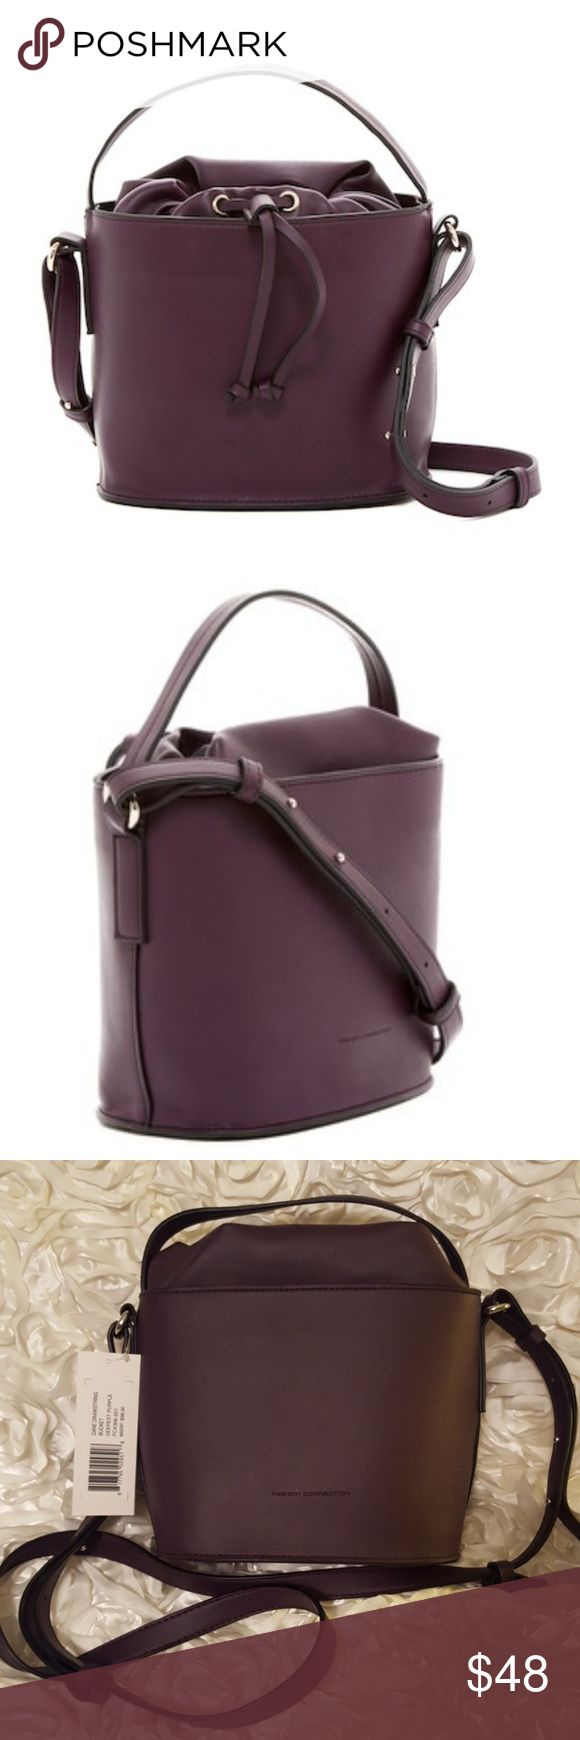 *CCO!*French Connection Dane Drawstring Bucket bag NWT French Connection Dane Drawstring Bucket bag,in the color Deepest Purple. This bag is very unique and cute! It has a single top handle,adjustable shoulder strap,and drawstring top. The interior has one slip pocket and one zip pocket. It measures approximately 8 inches high, 8 inches wide,and 5 inches in diameter. I ship same day or next day! French Connection Bags Crossbody Bags